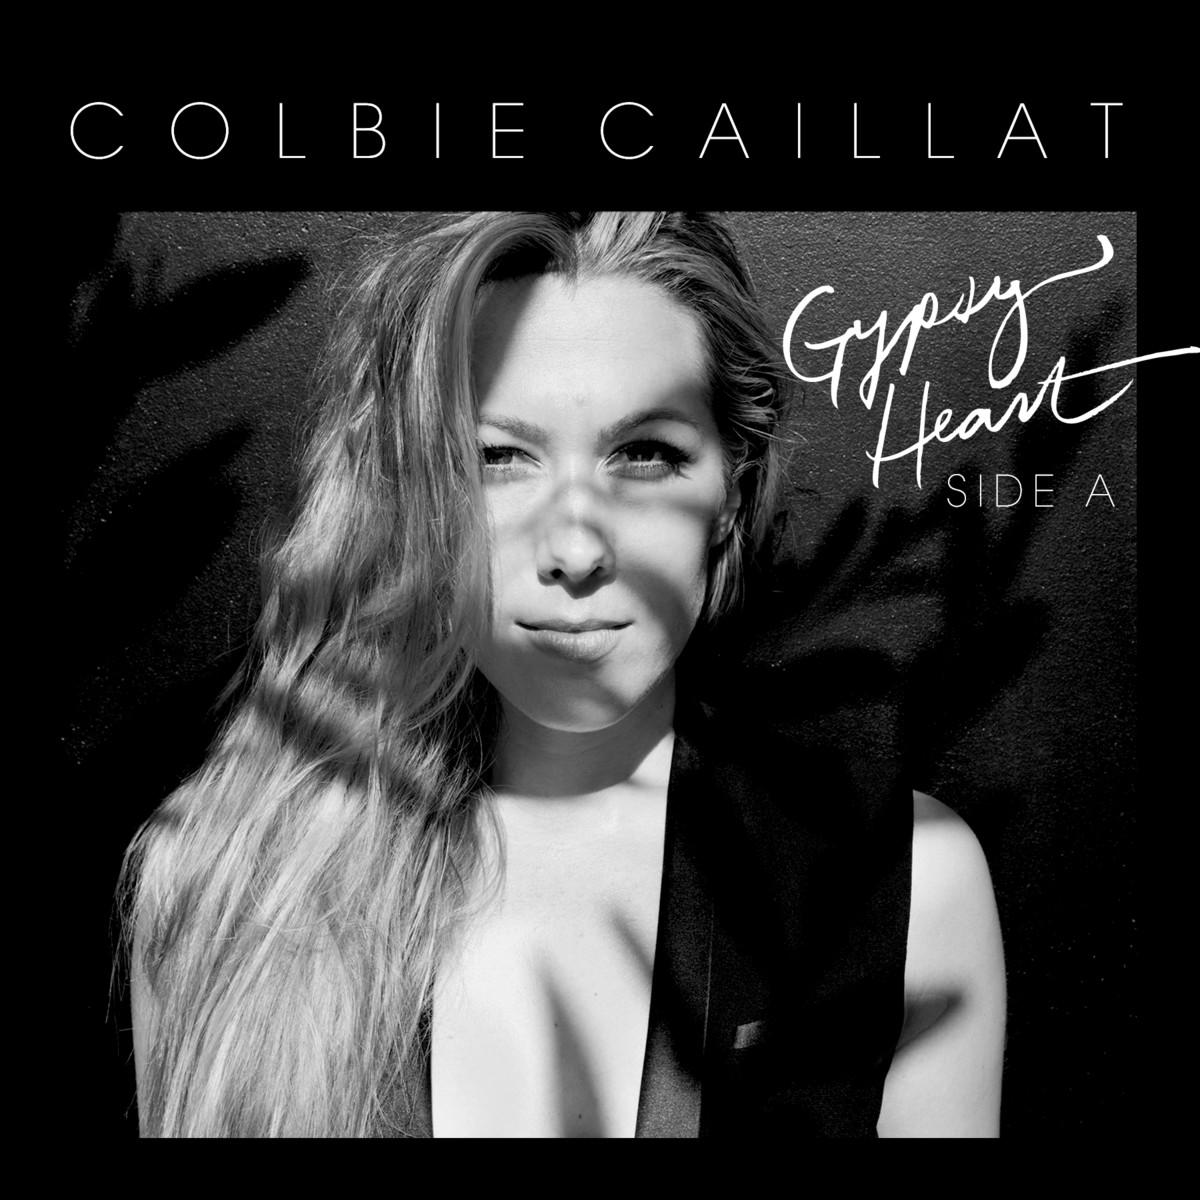 #Np Try @ColbieCaillat  #GoodMorningNigeriaShow with @UsoroEdima #Edima   #MondayMotivation #BeSafe  #EspressoDay  #CashewDay   Listen live: https://t.co/APoEkCjqwo https://t.co/Q1vhWp9o8S